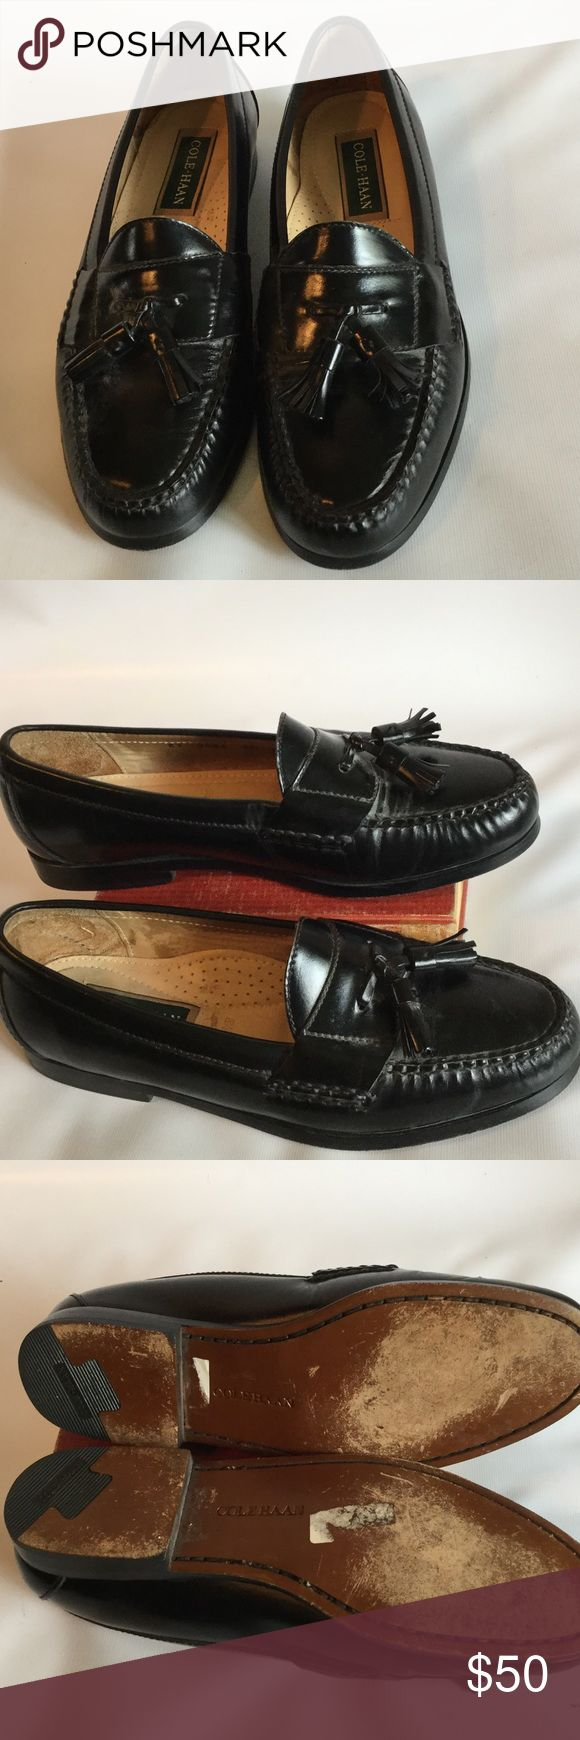 Cole Haan leather tassel shoes🎈sale🎈 Leather tassel dress shoes from Cole Haan,  in excellent condition Cole Haan Shoes Loafers & Slip-Ons